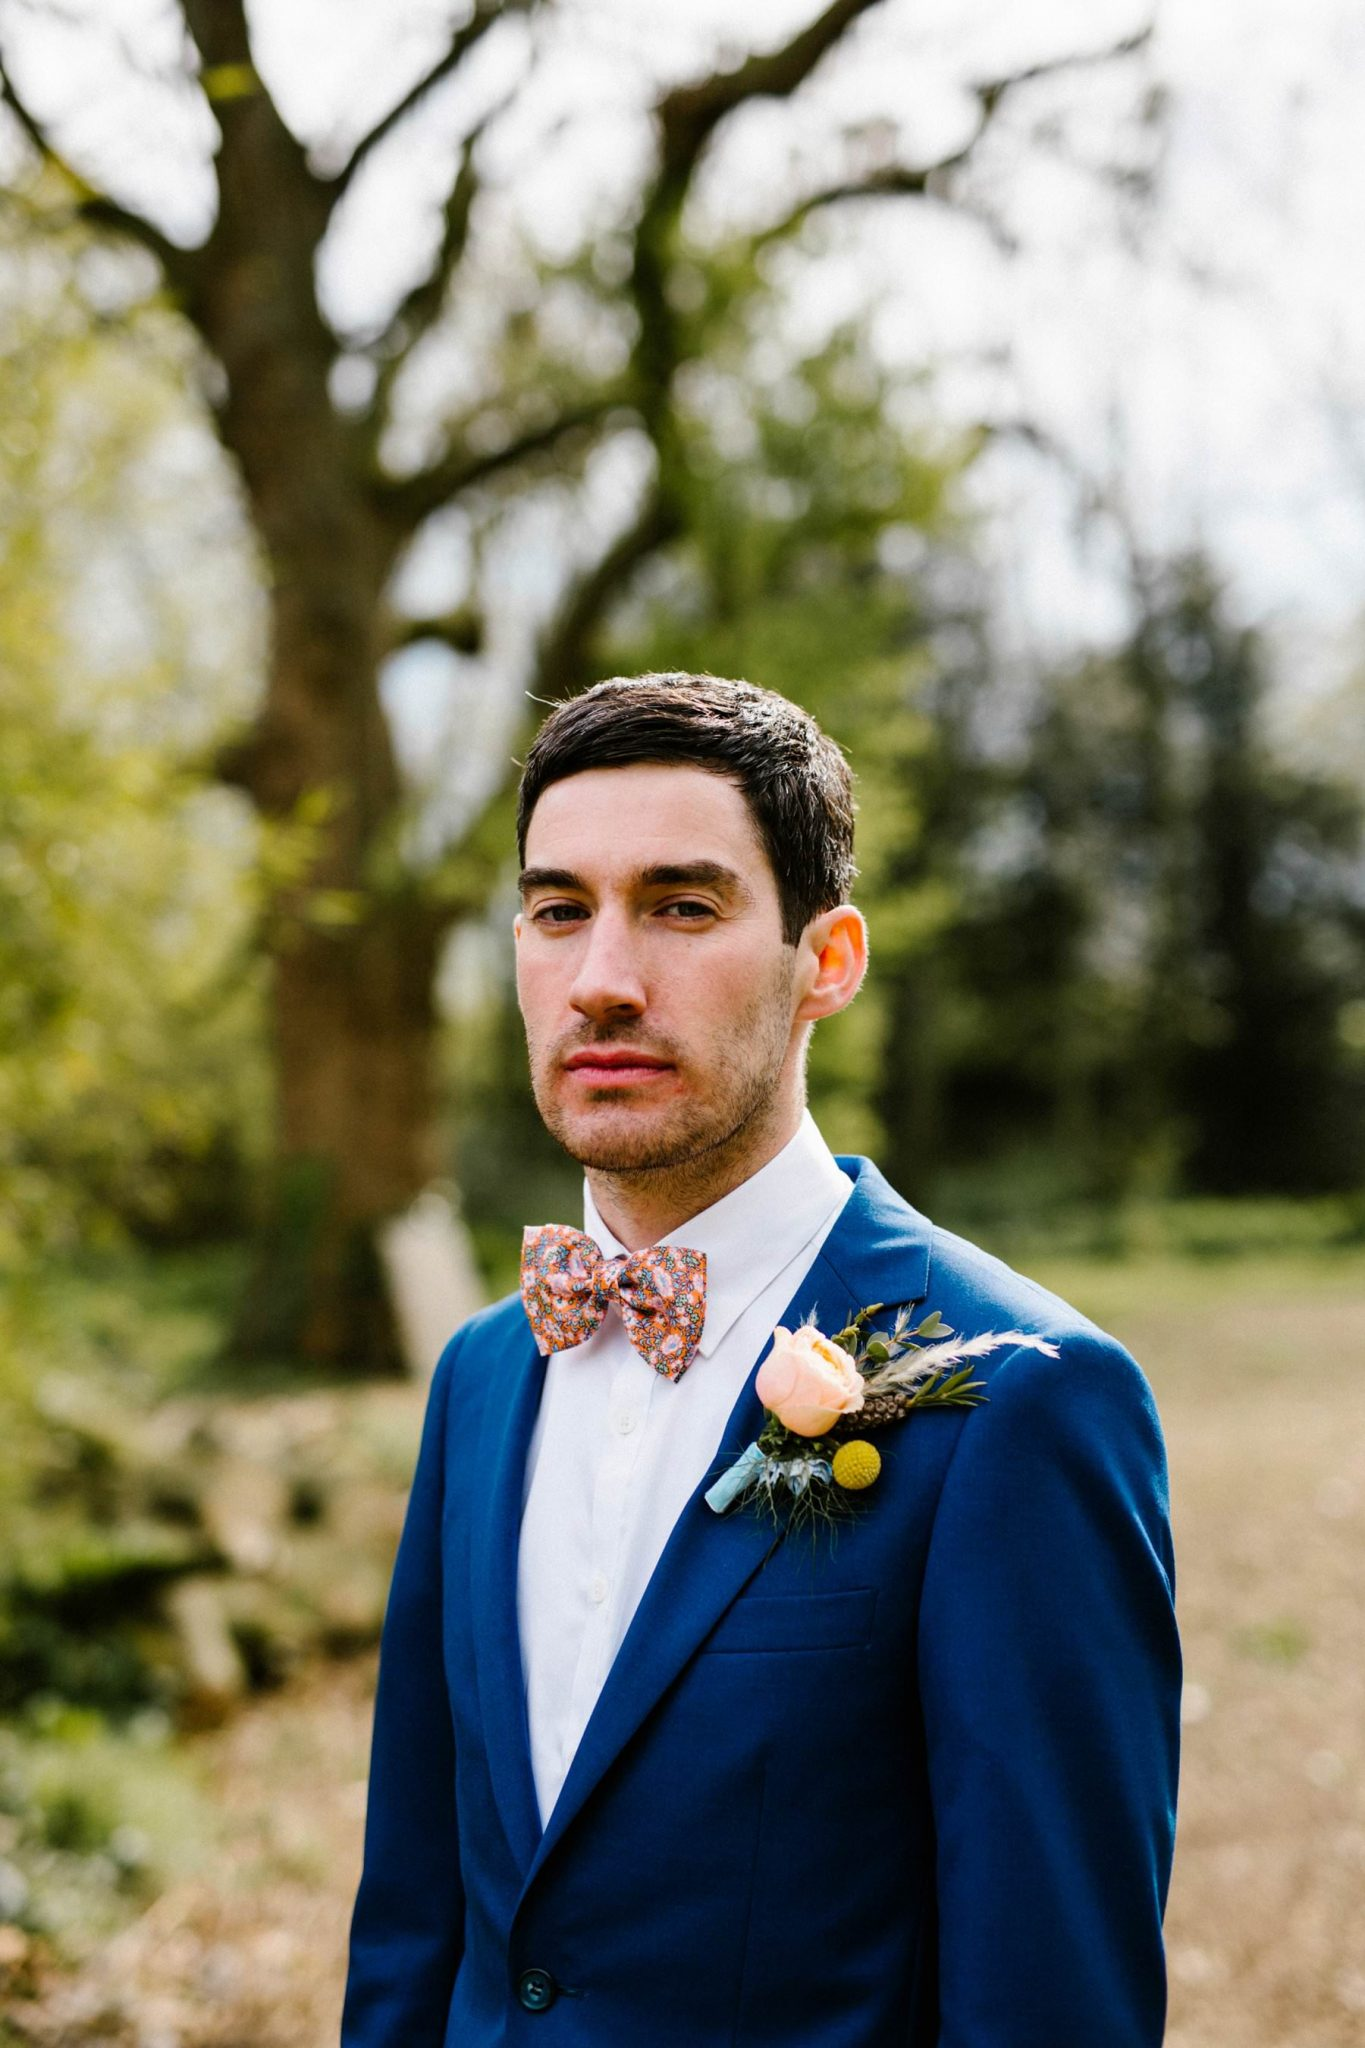 groom portrait wedding photography ireland